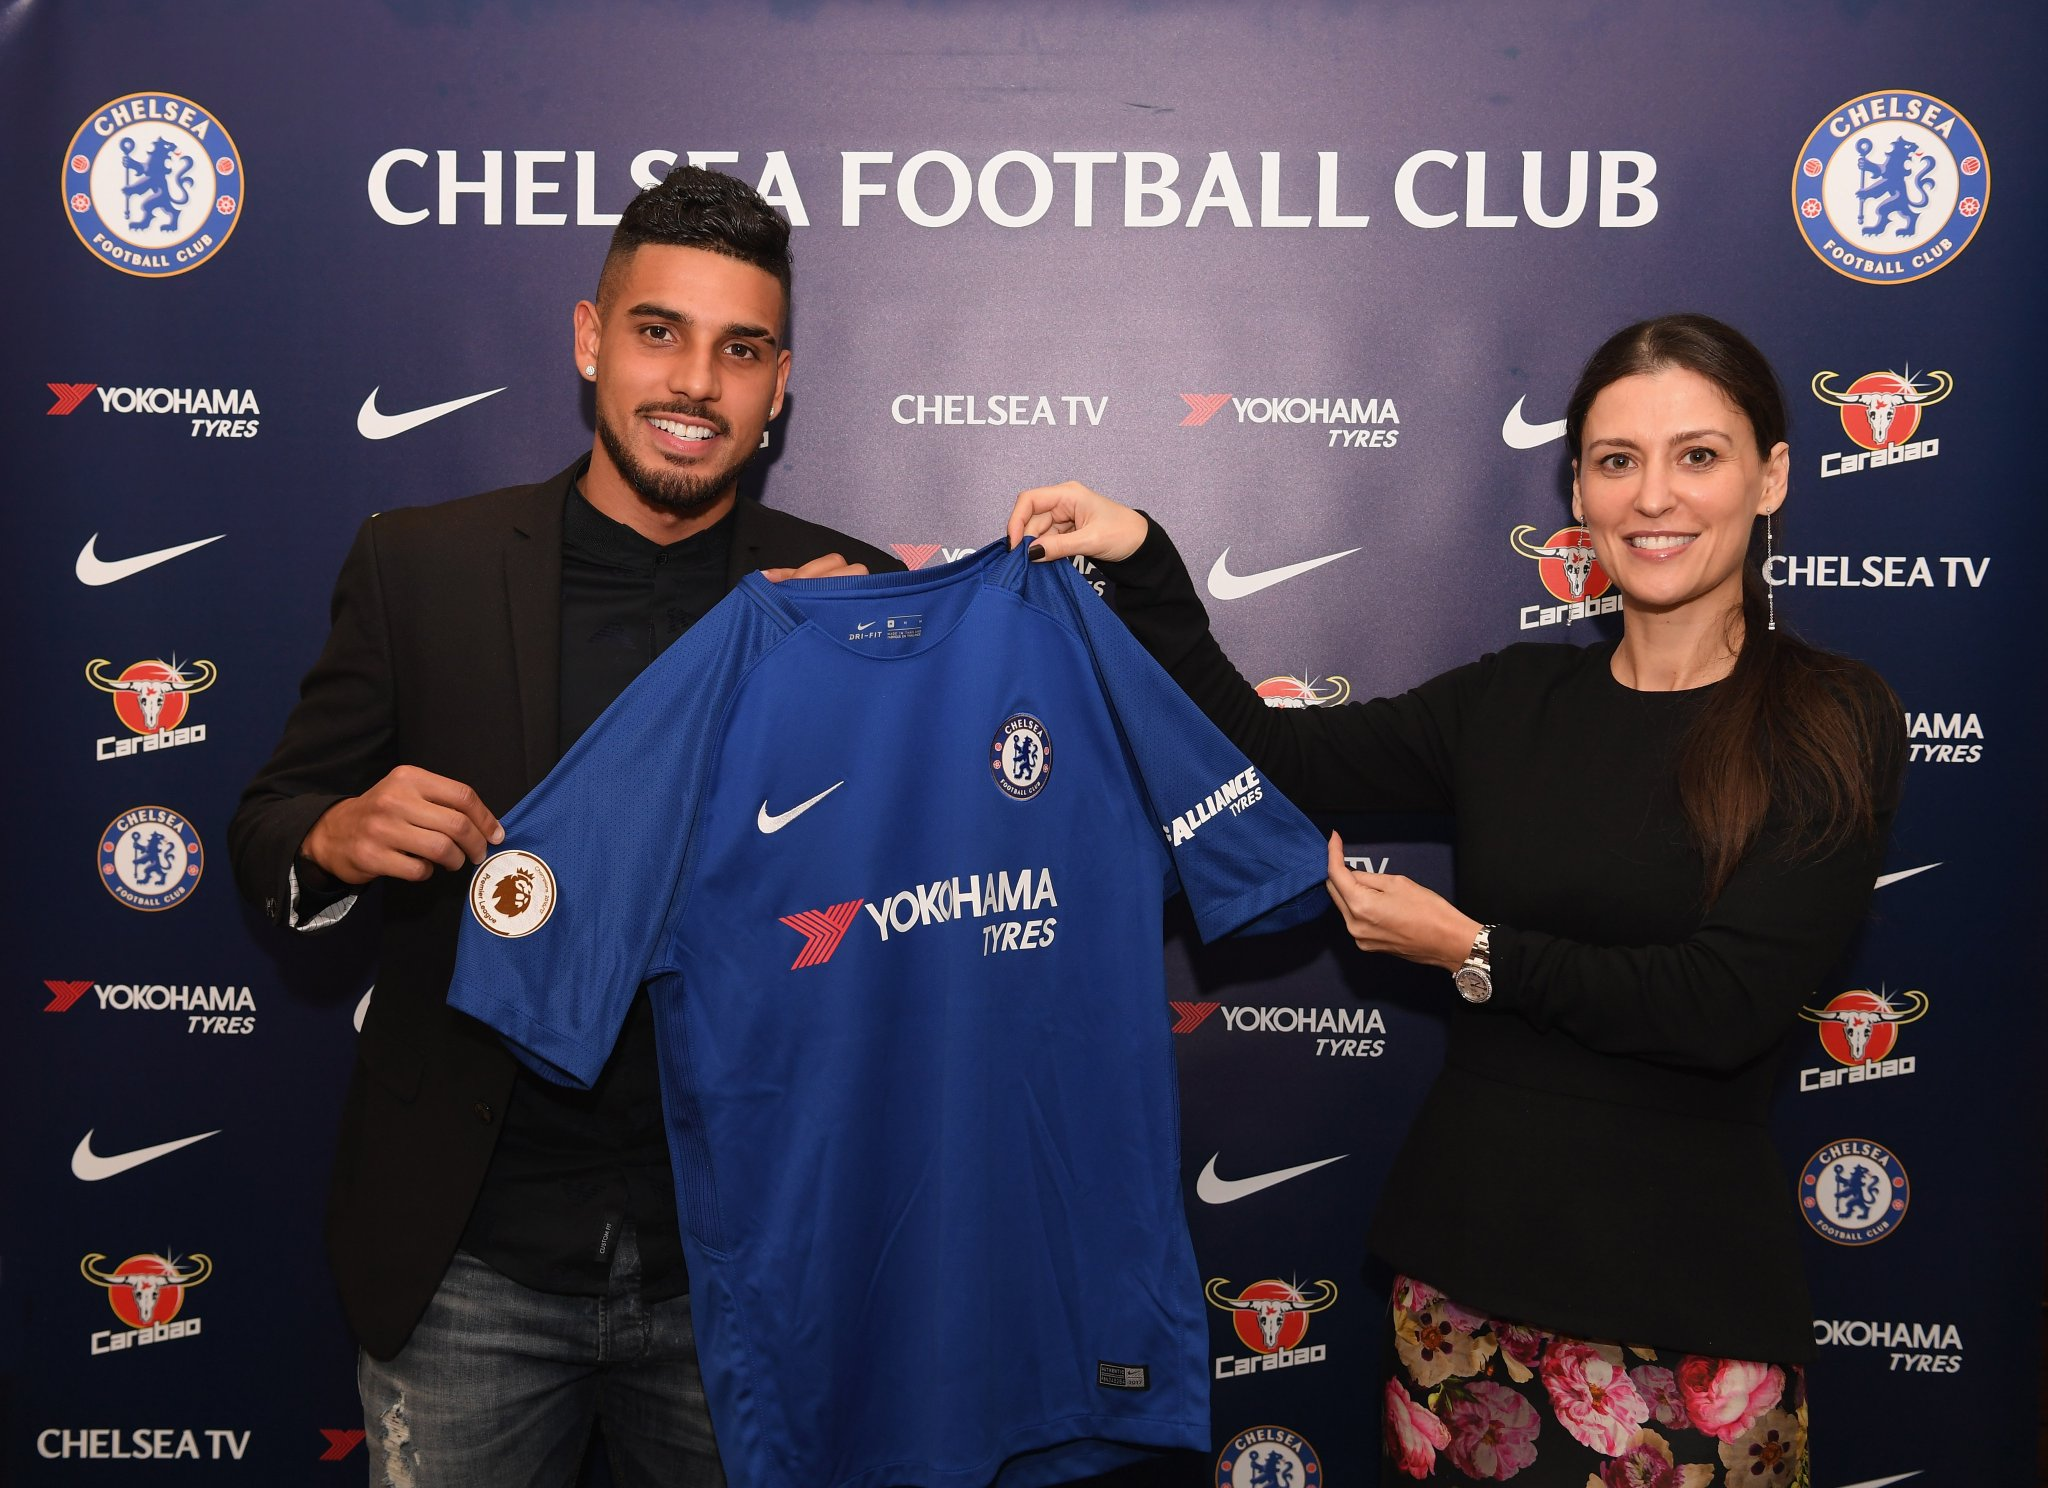 BREAKING: Chelsea completes £25m signing of AS Roma's Emerson Palmieri